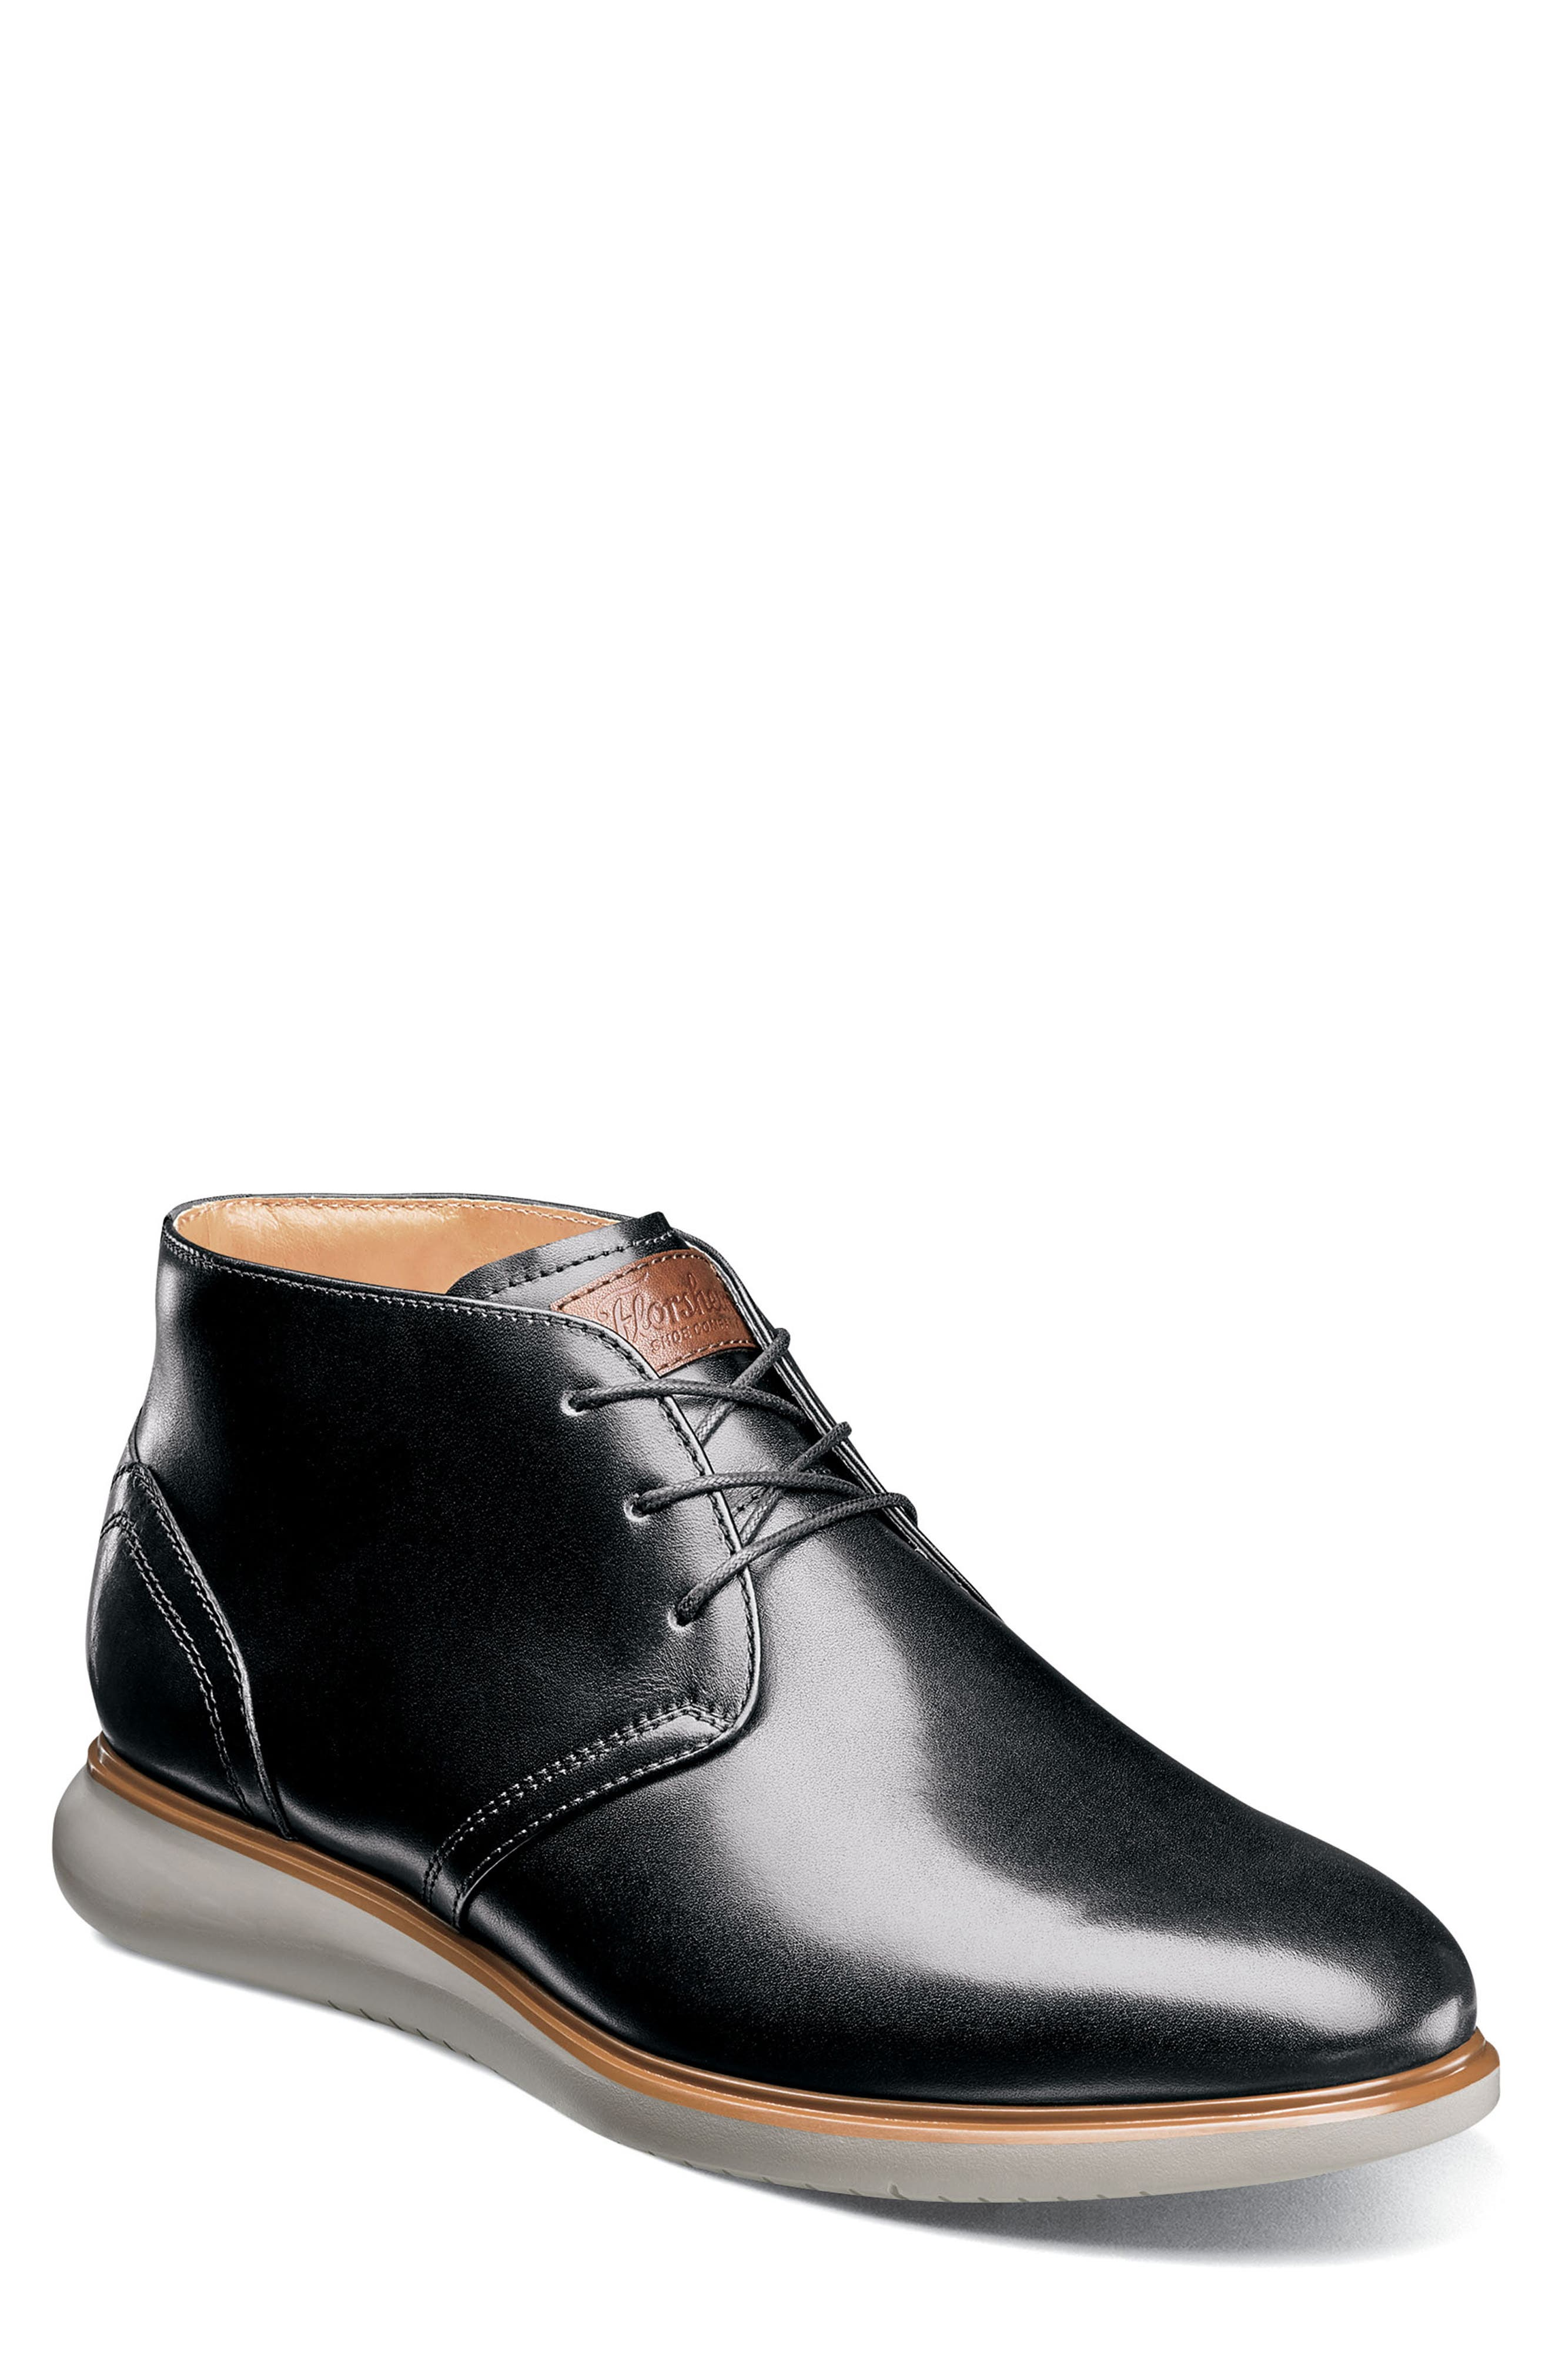 FLORSHEIM,                             Fuel Chukka Boot,                             Main thumbnail 1, color,                             BLACK LEATHER